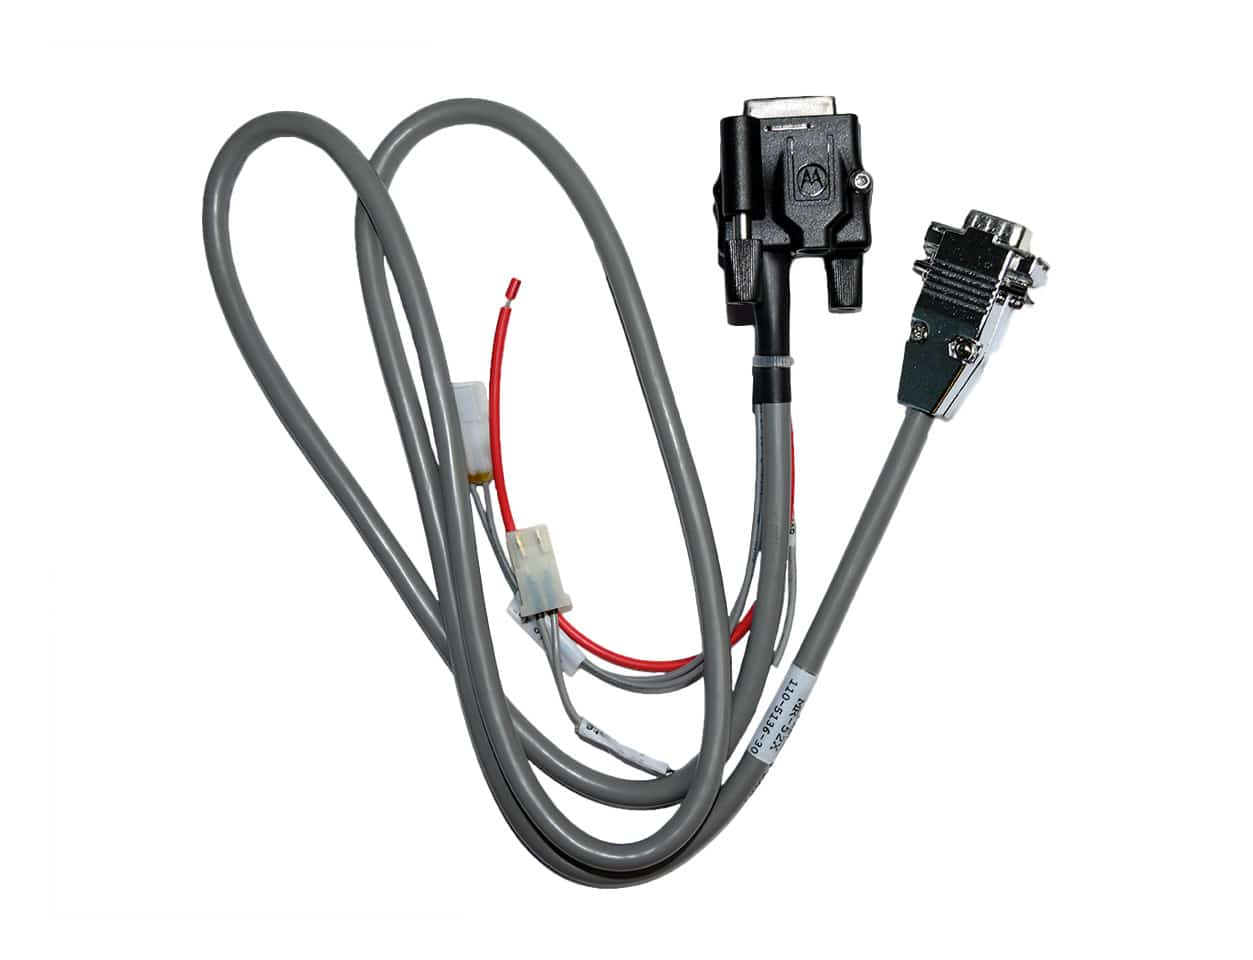 mr-52x-mobile-radio-cable